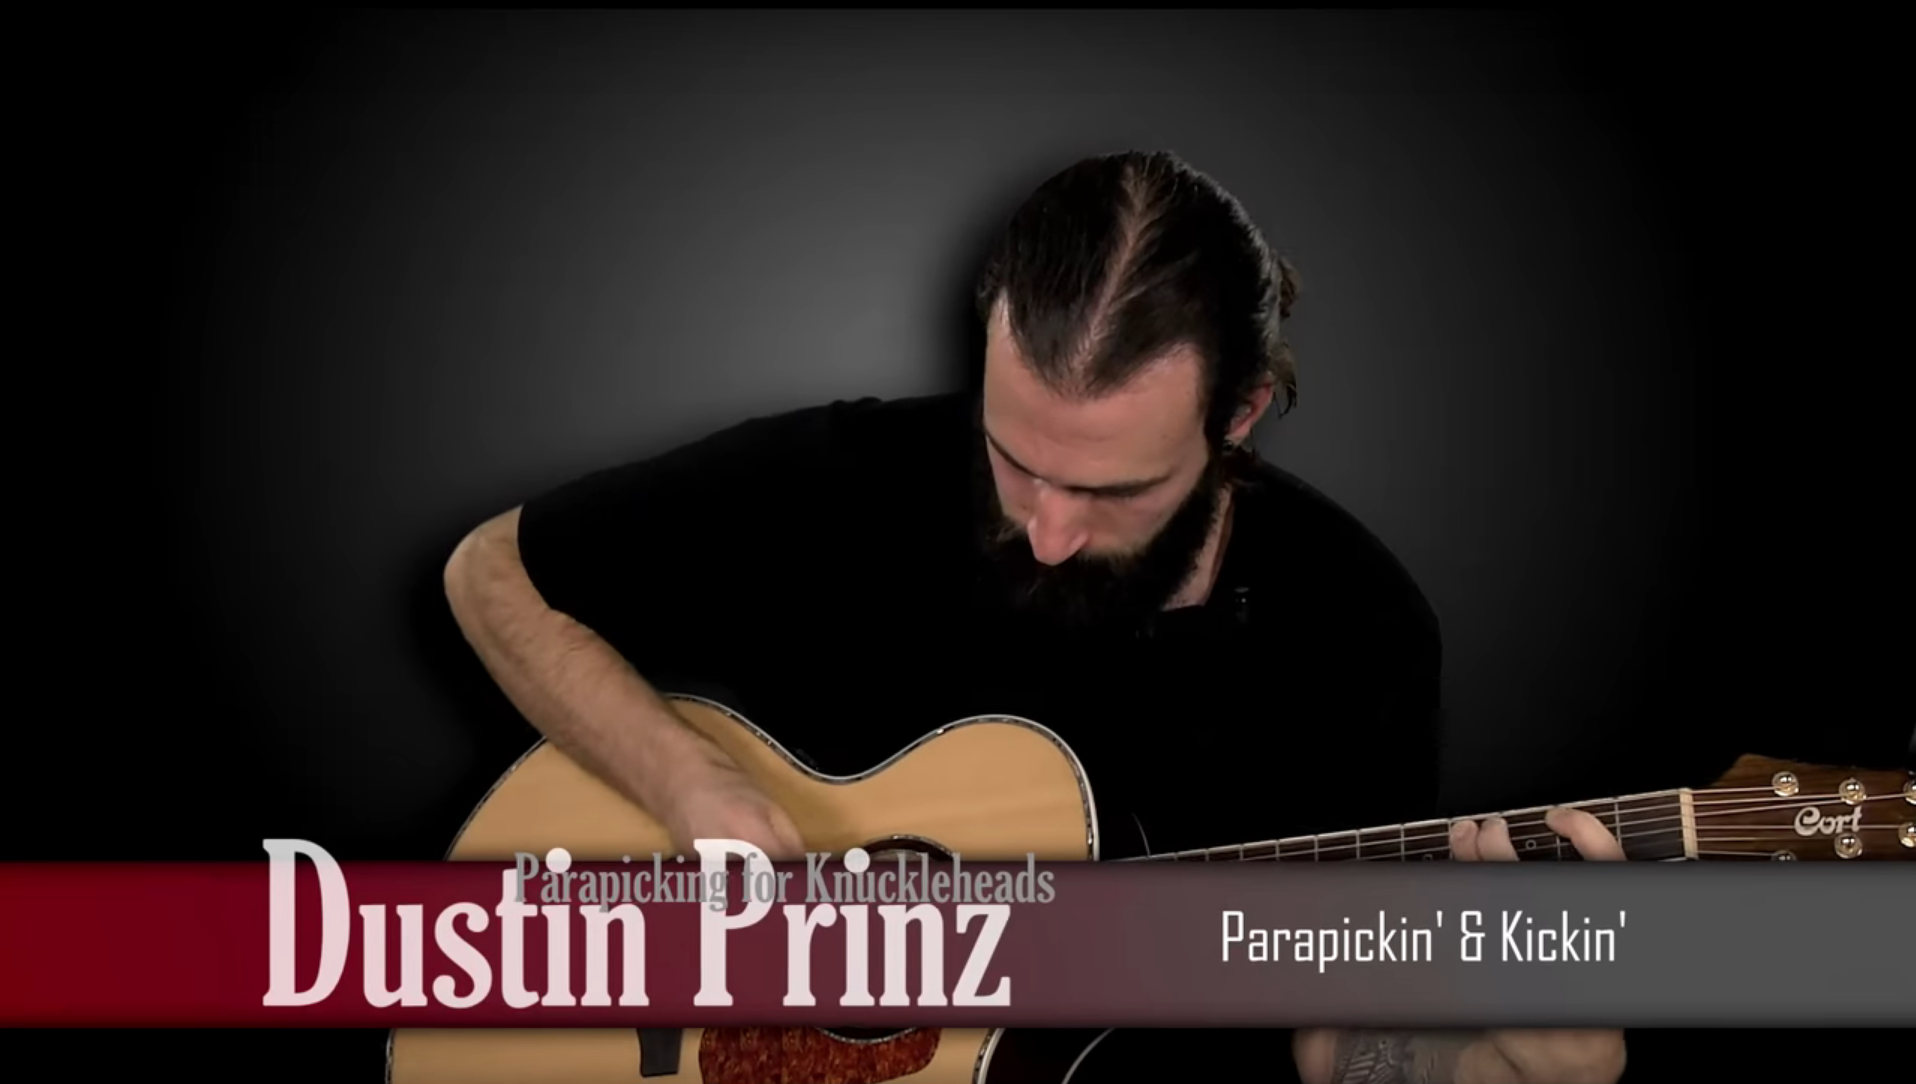 Video 4 - Learn how to add a kick drum a snare sound with your right picking hand! All while doing alternate picking and string skipping! Dustin runs through another simple to learn riff.